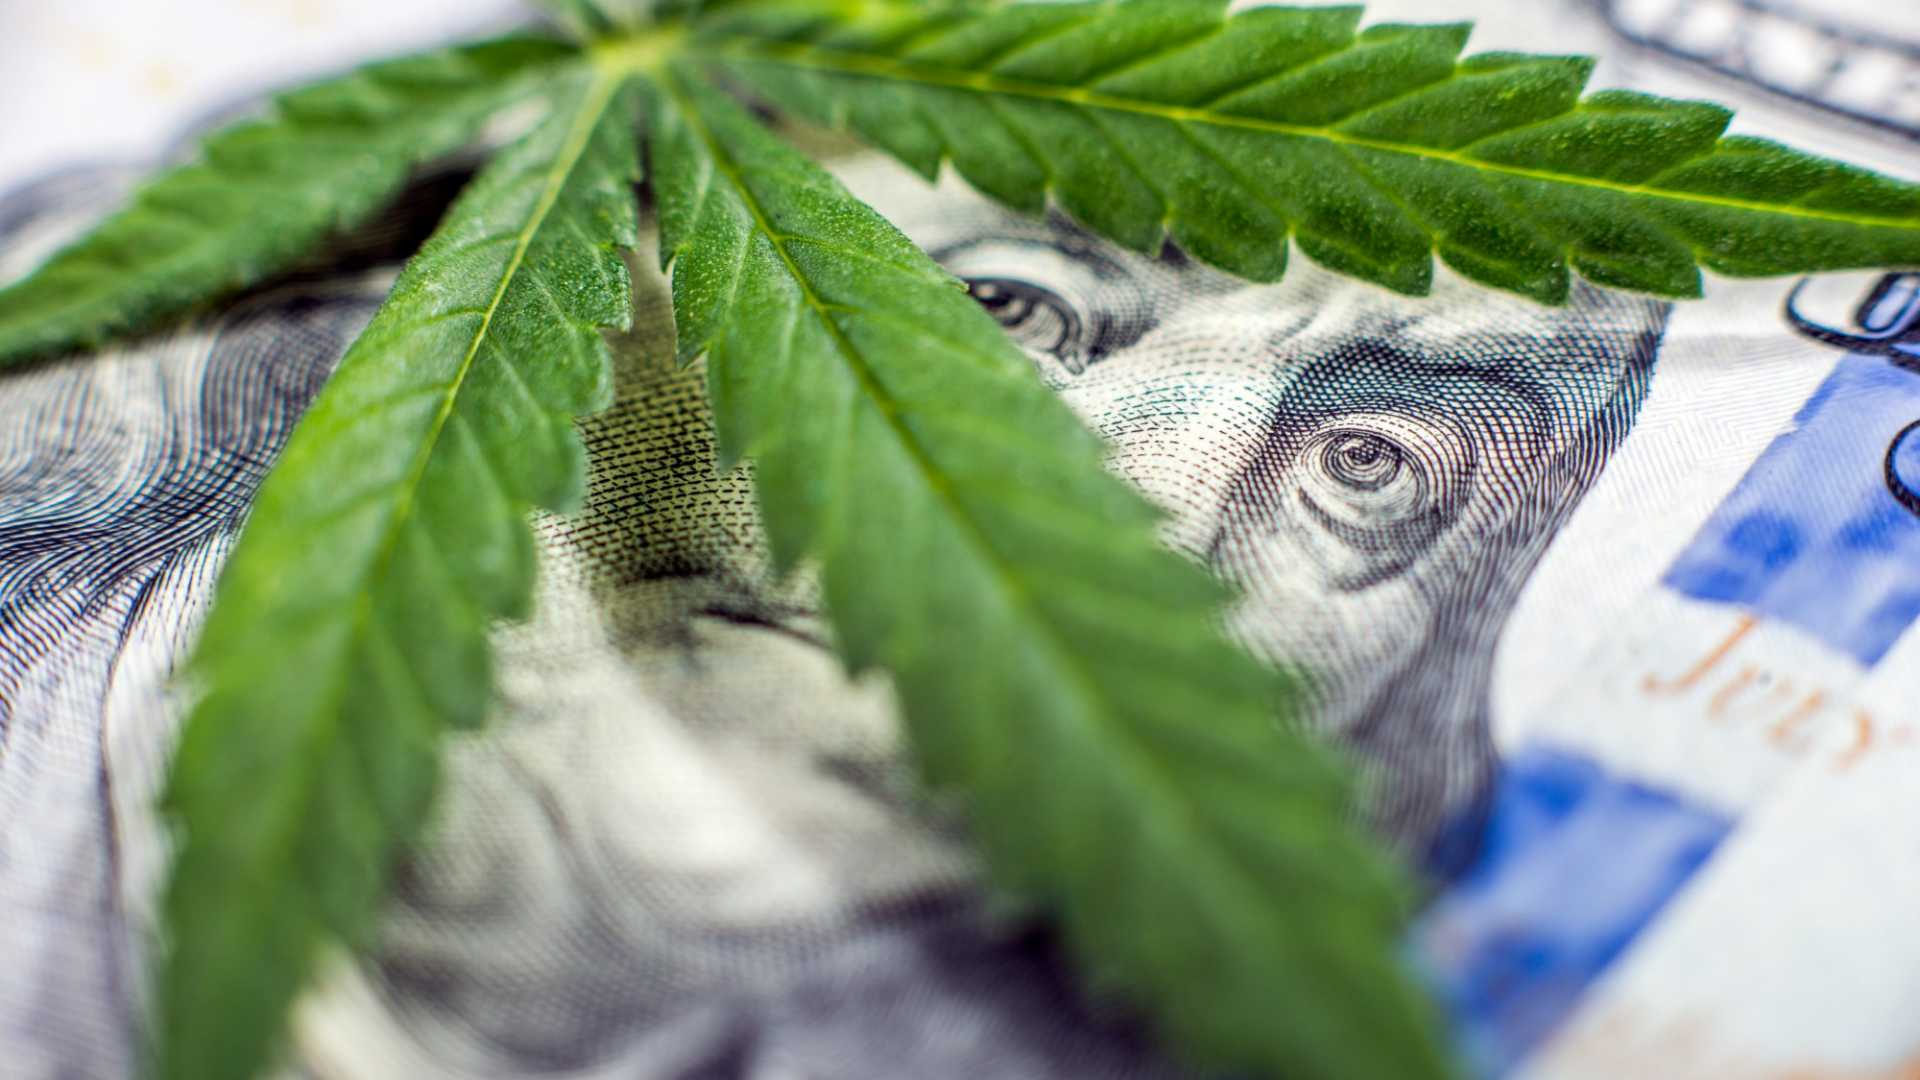 While Some Will Get Lucky, the Big Winners in Cannabis Will Take These 4 Pieces of Advice From the Experts